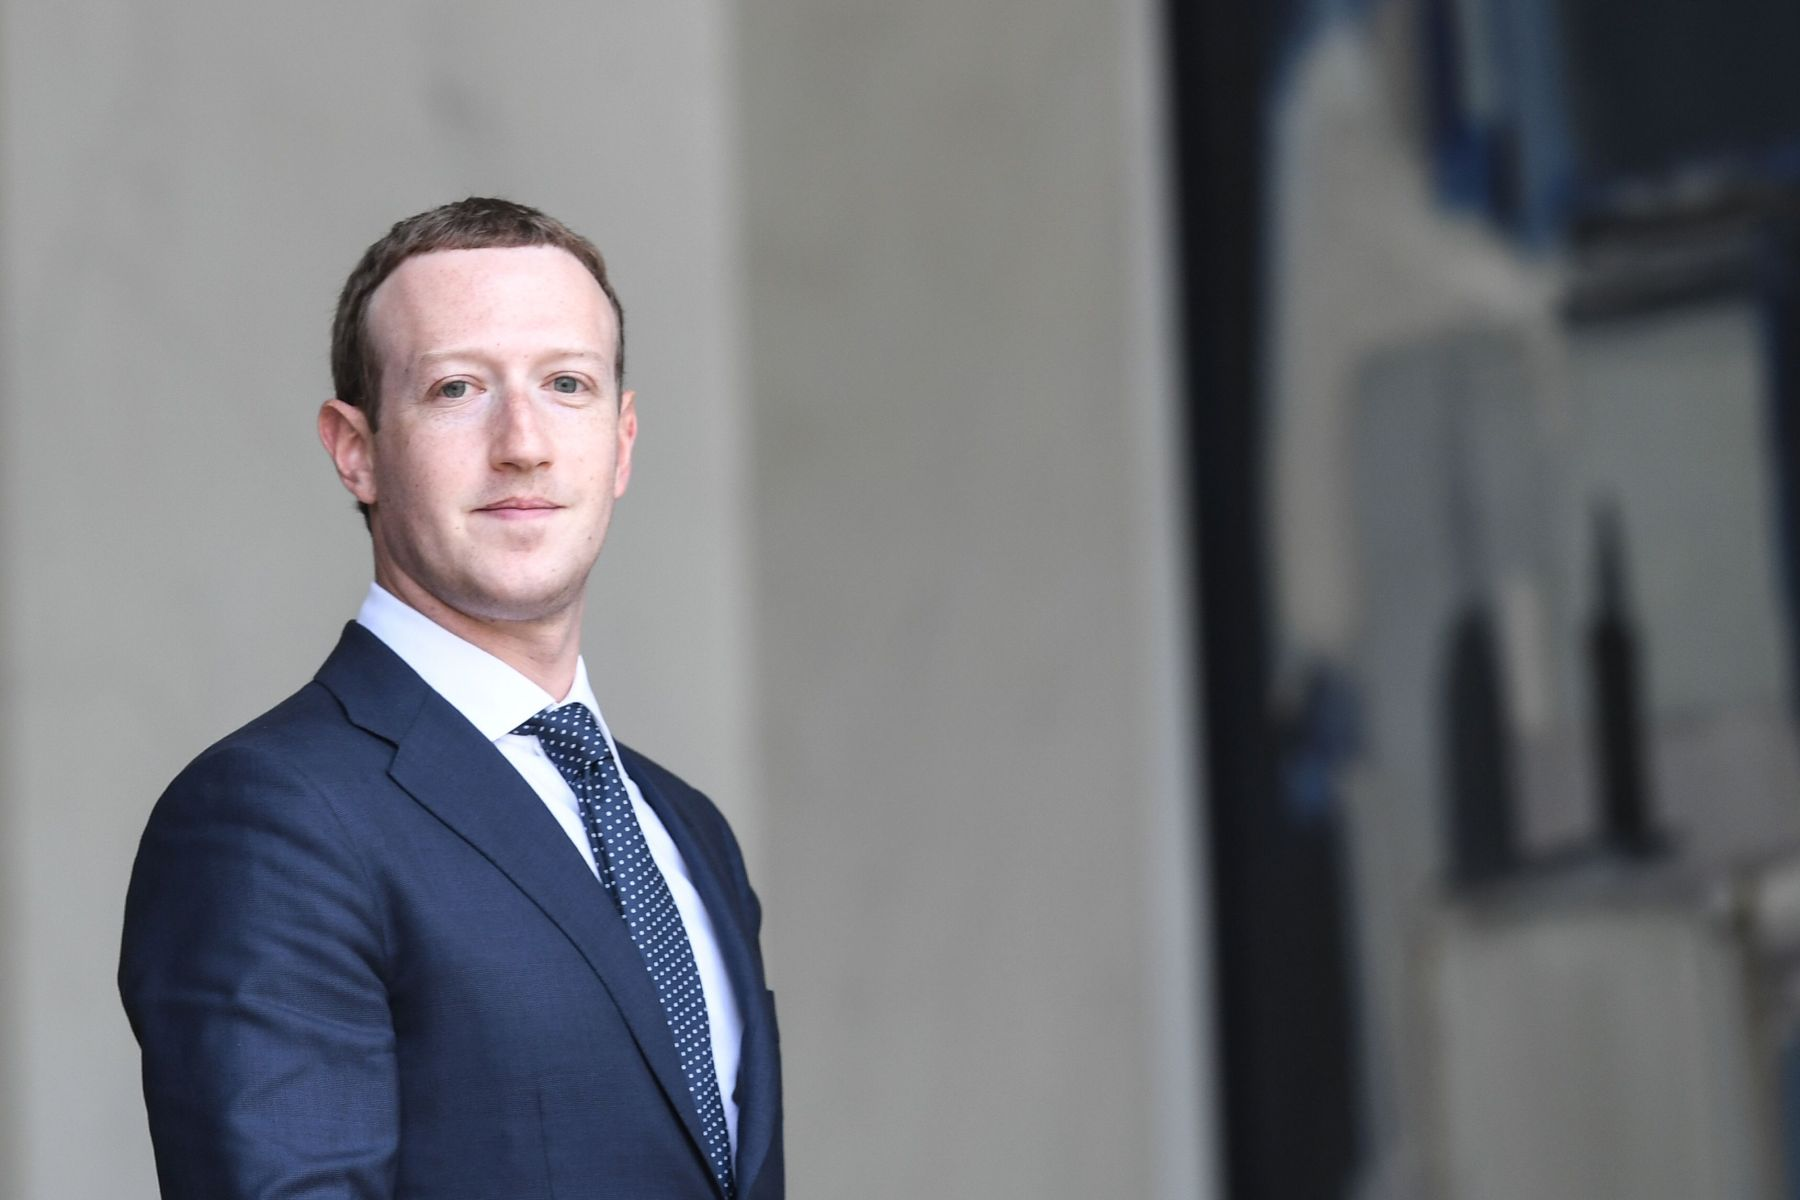 Mark Zuckerberg's personal security cost more than doubled. (Getty Images)